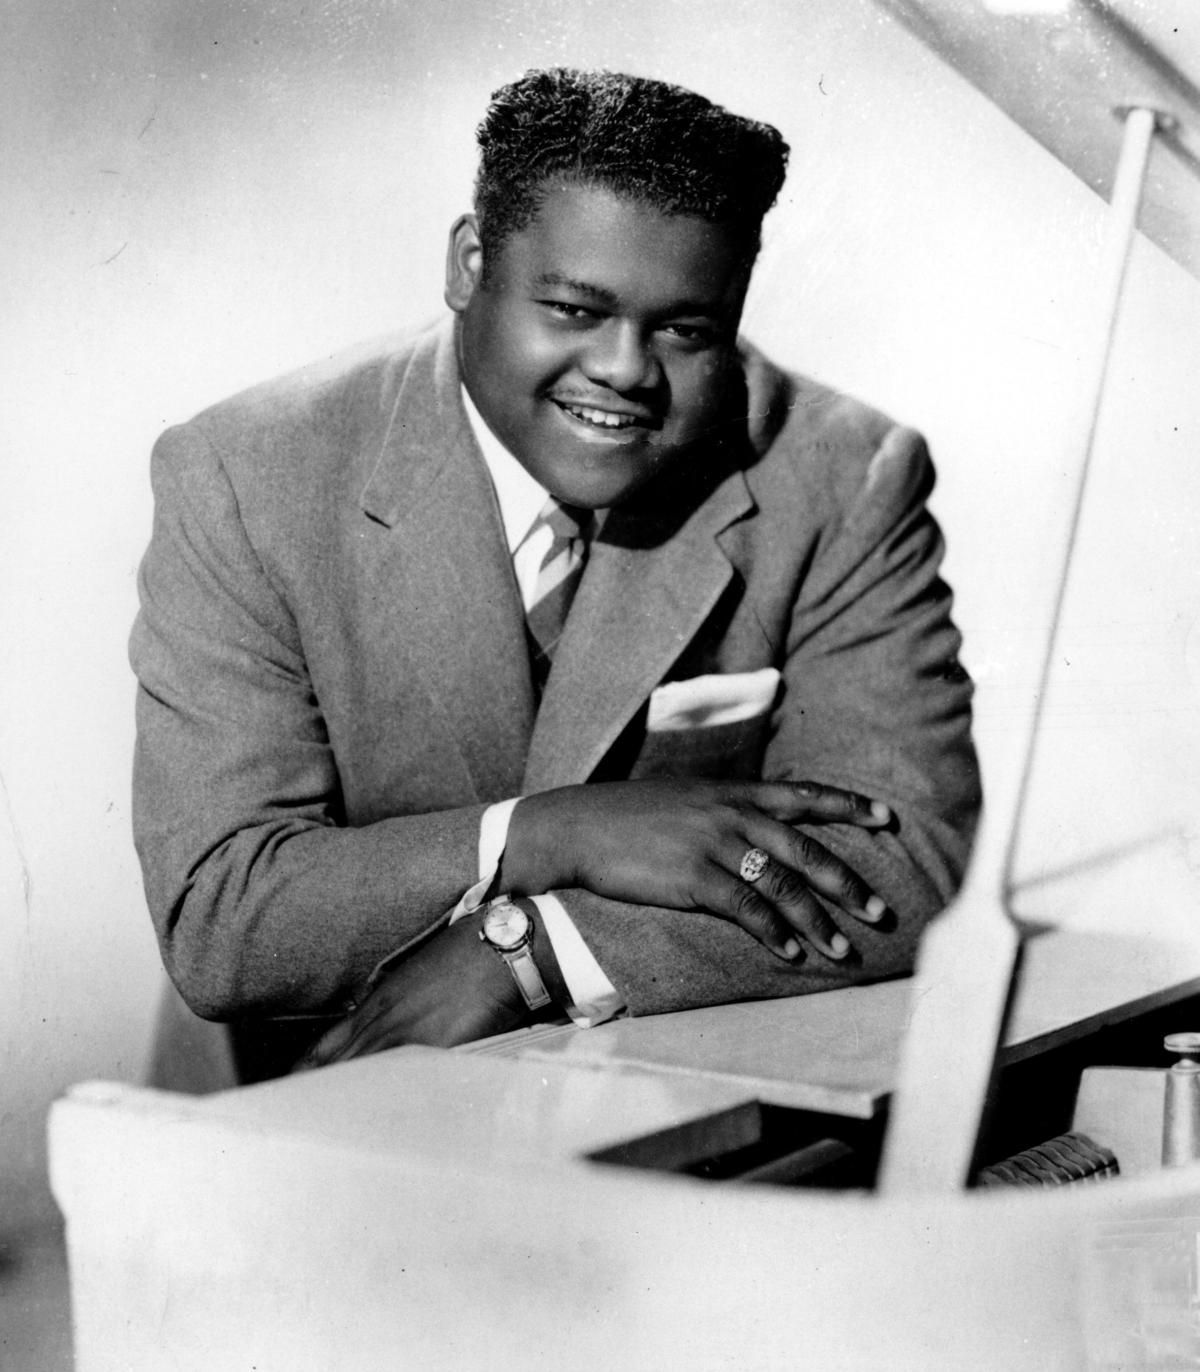 Legendary New Orleans musician Fats Domino dead at 89